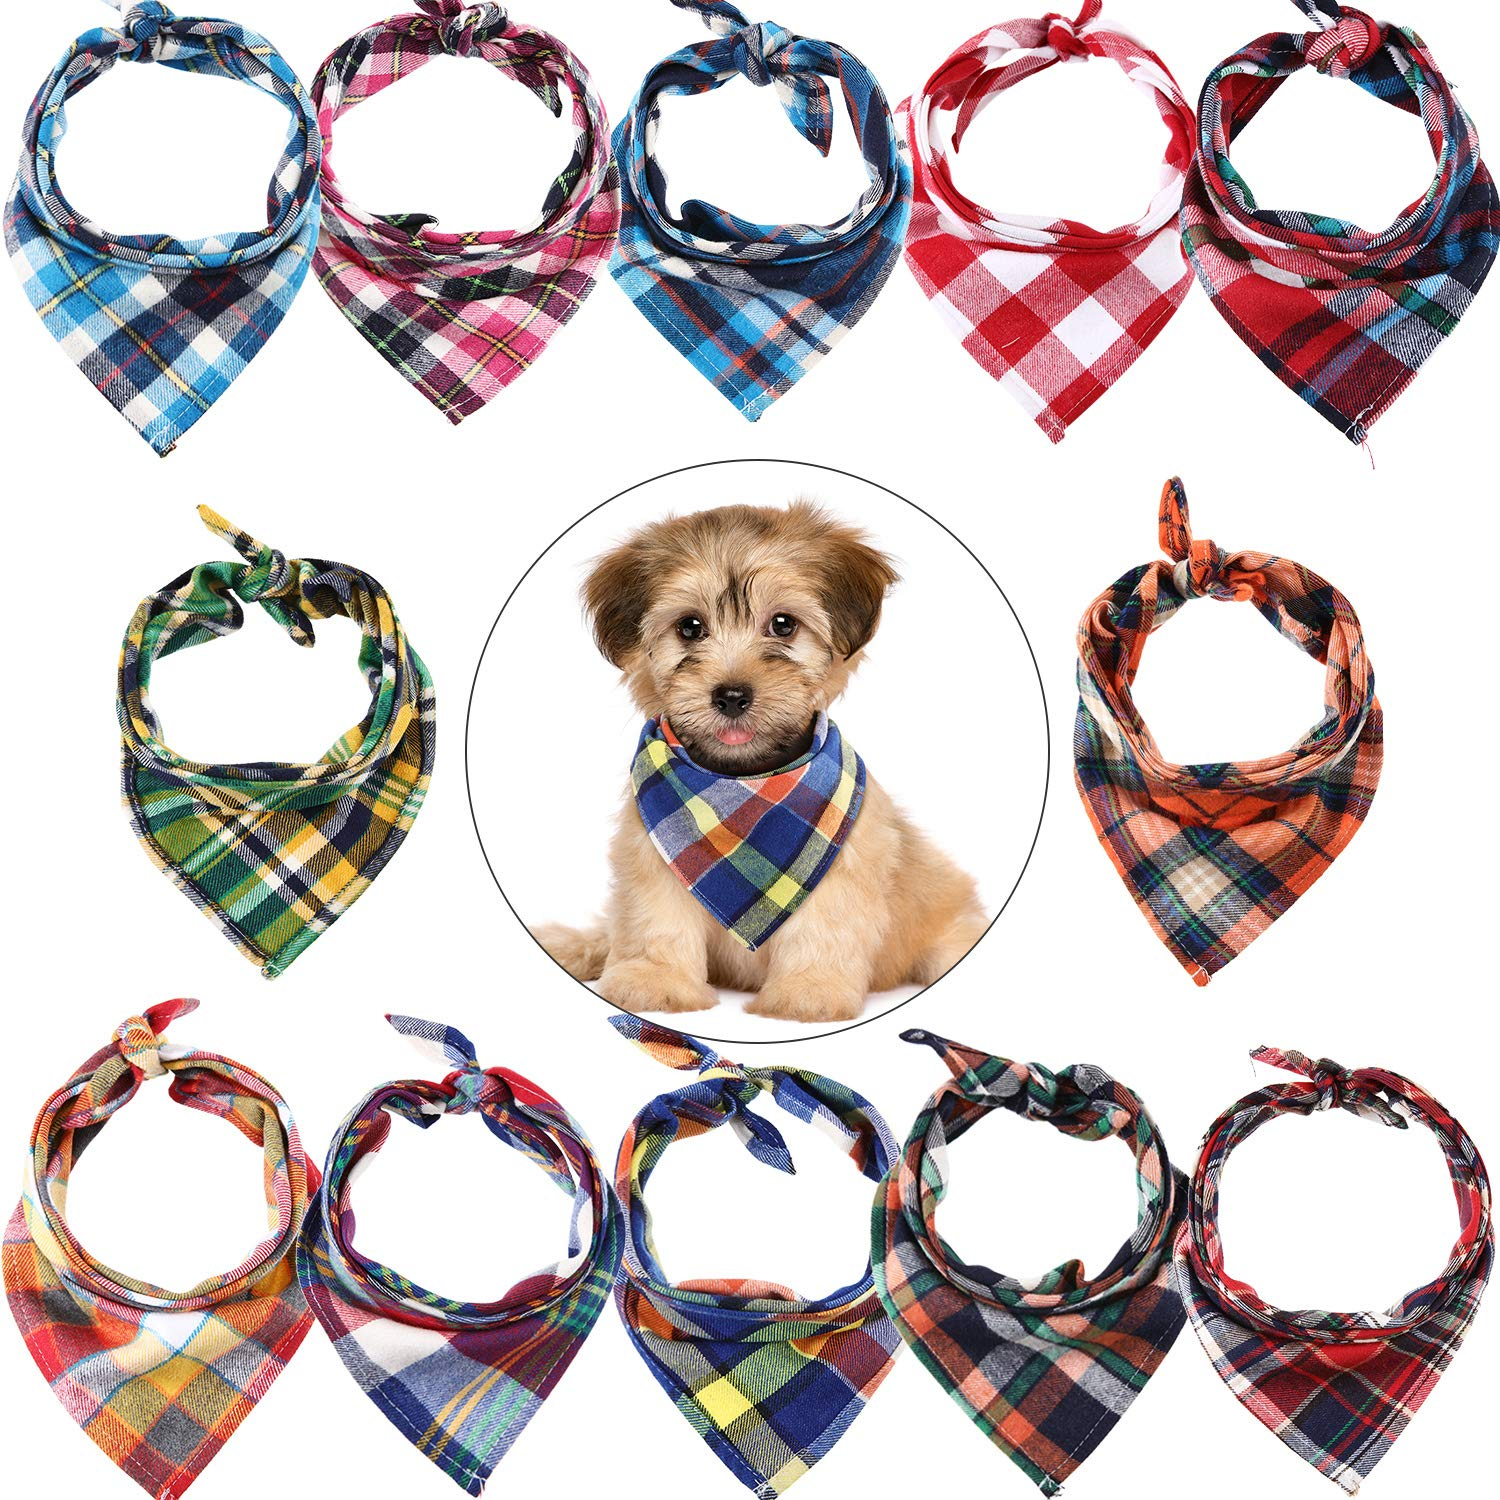 12 Pieces Dog Bandanas - Triangle Dog Scarf, Washable Reversible Plaid Printing, Bibs Dog Kerchief Set, Suitable for Small or Medium-Sized Cat and Dog Pets by Syhood